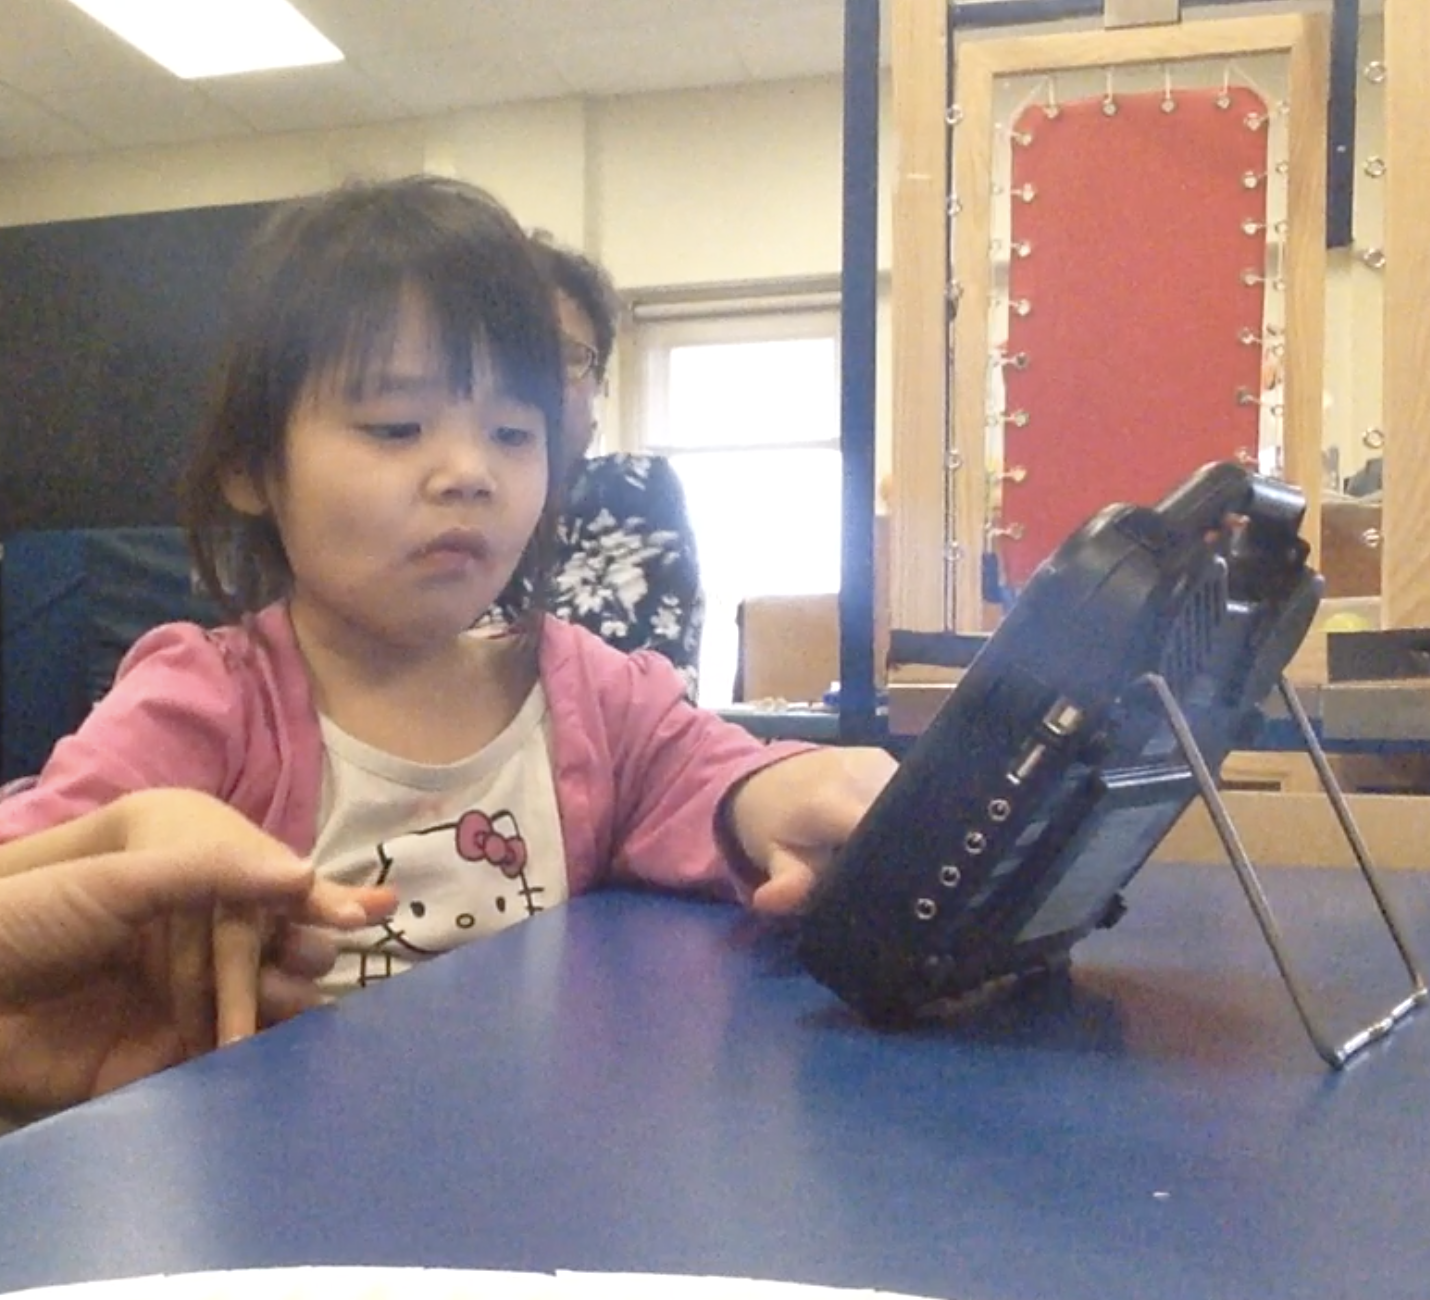 A young girl is learning how to communicate with an AAC device with the help of her teacher.